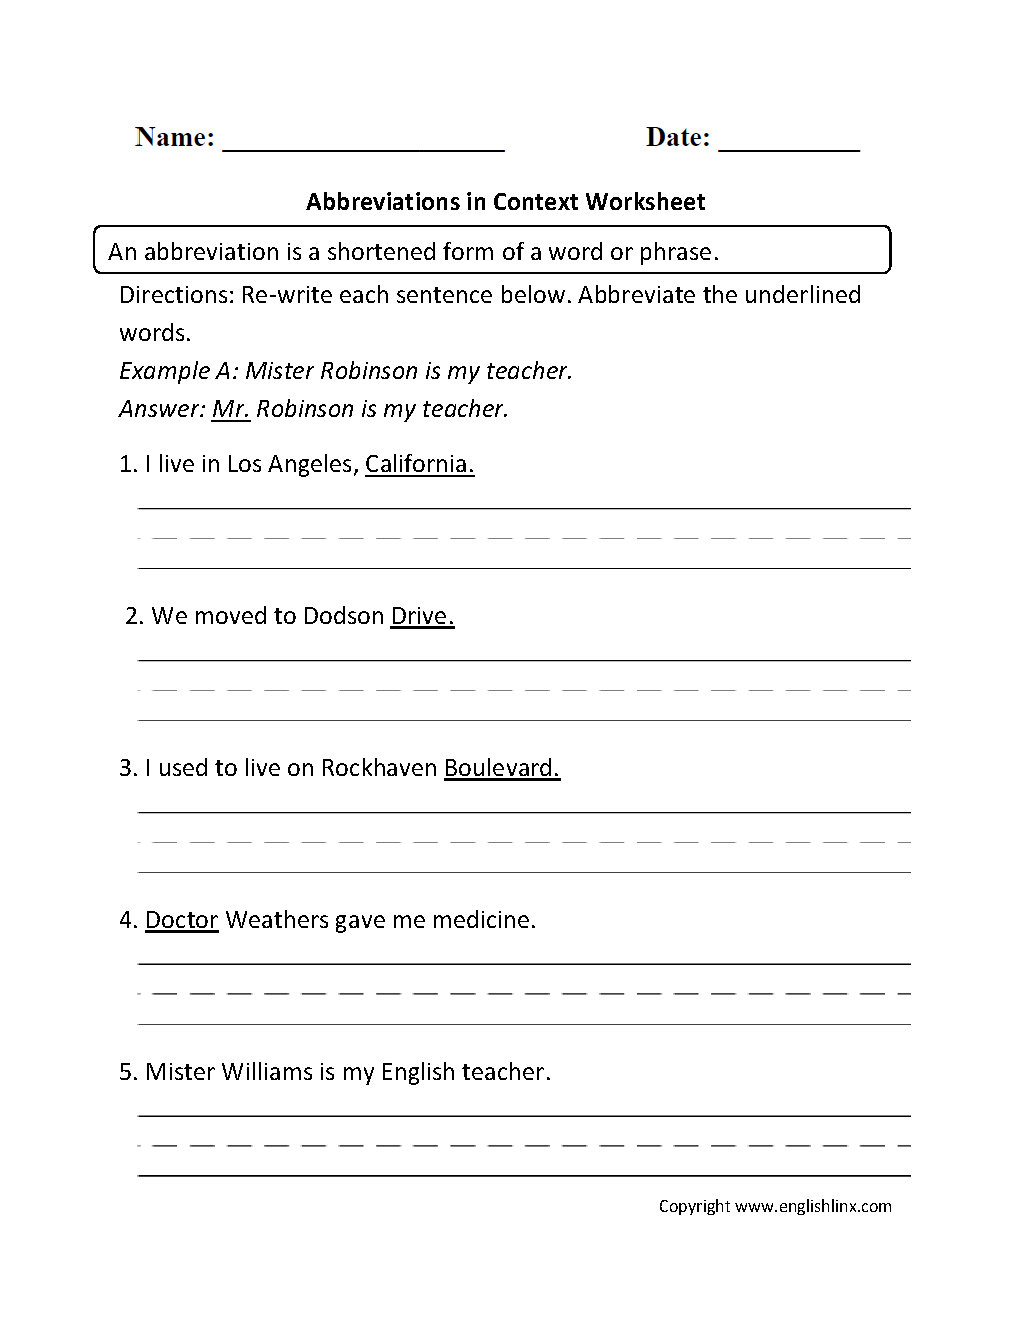 Workbooks personification worksheets : Abbreviations in Context Worksheet | Worksheets | Pinterest ...